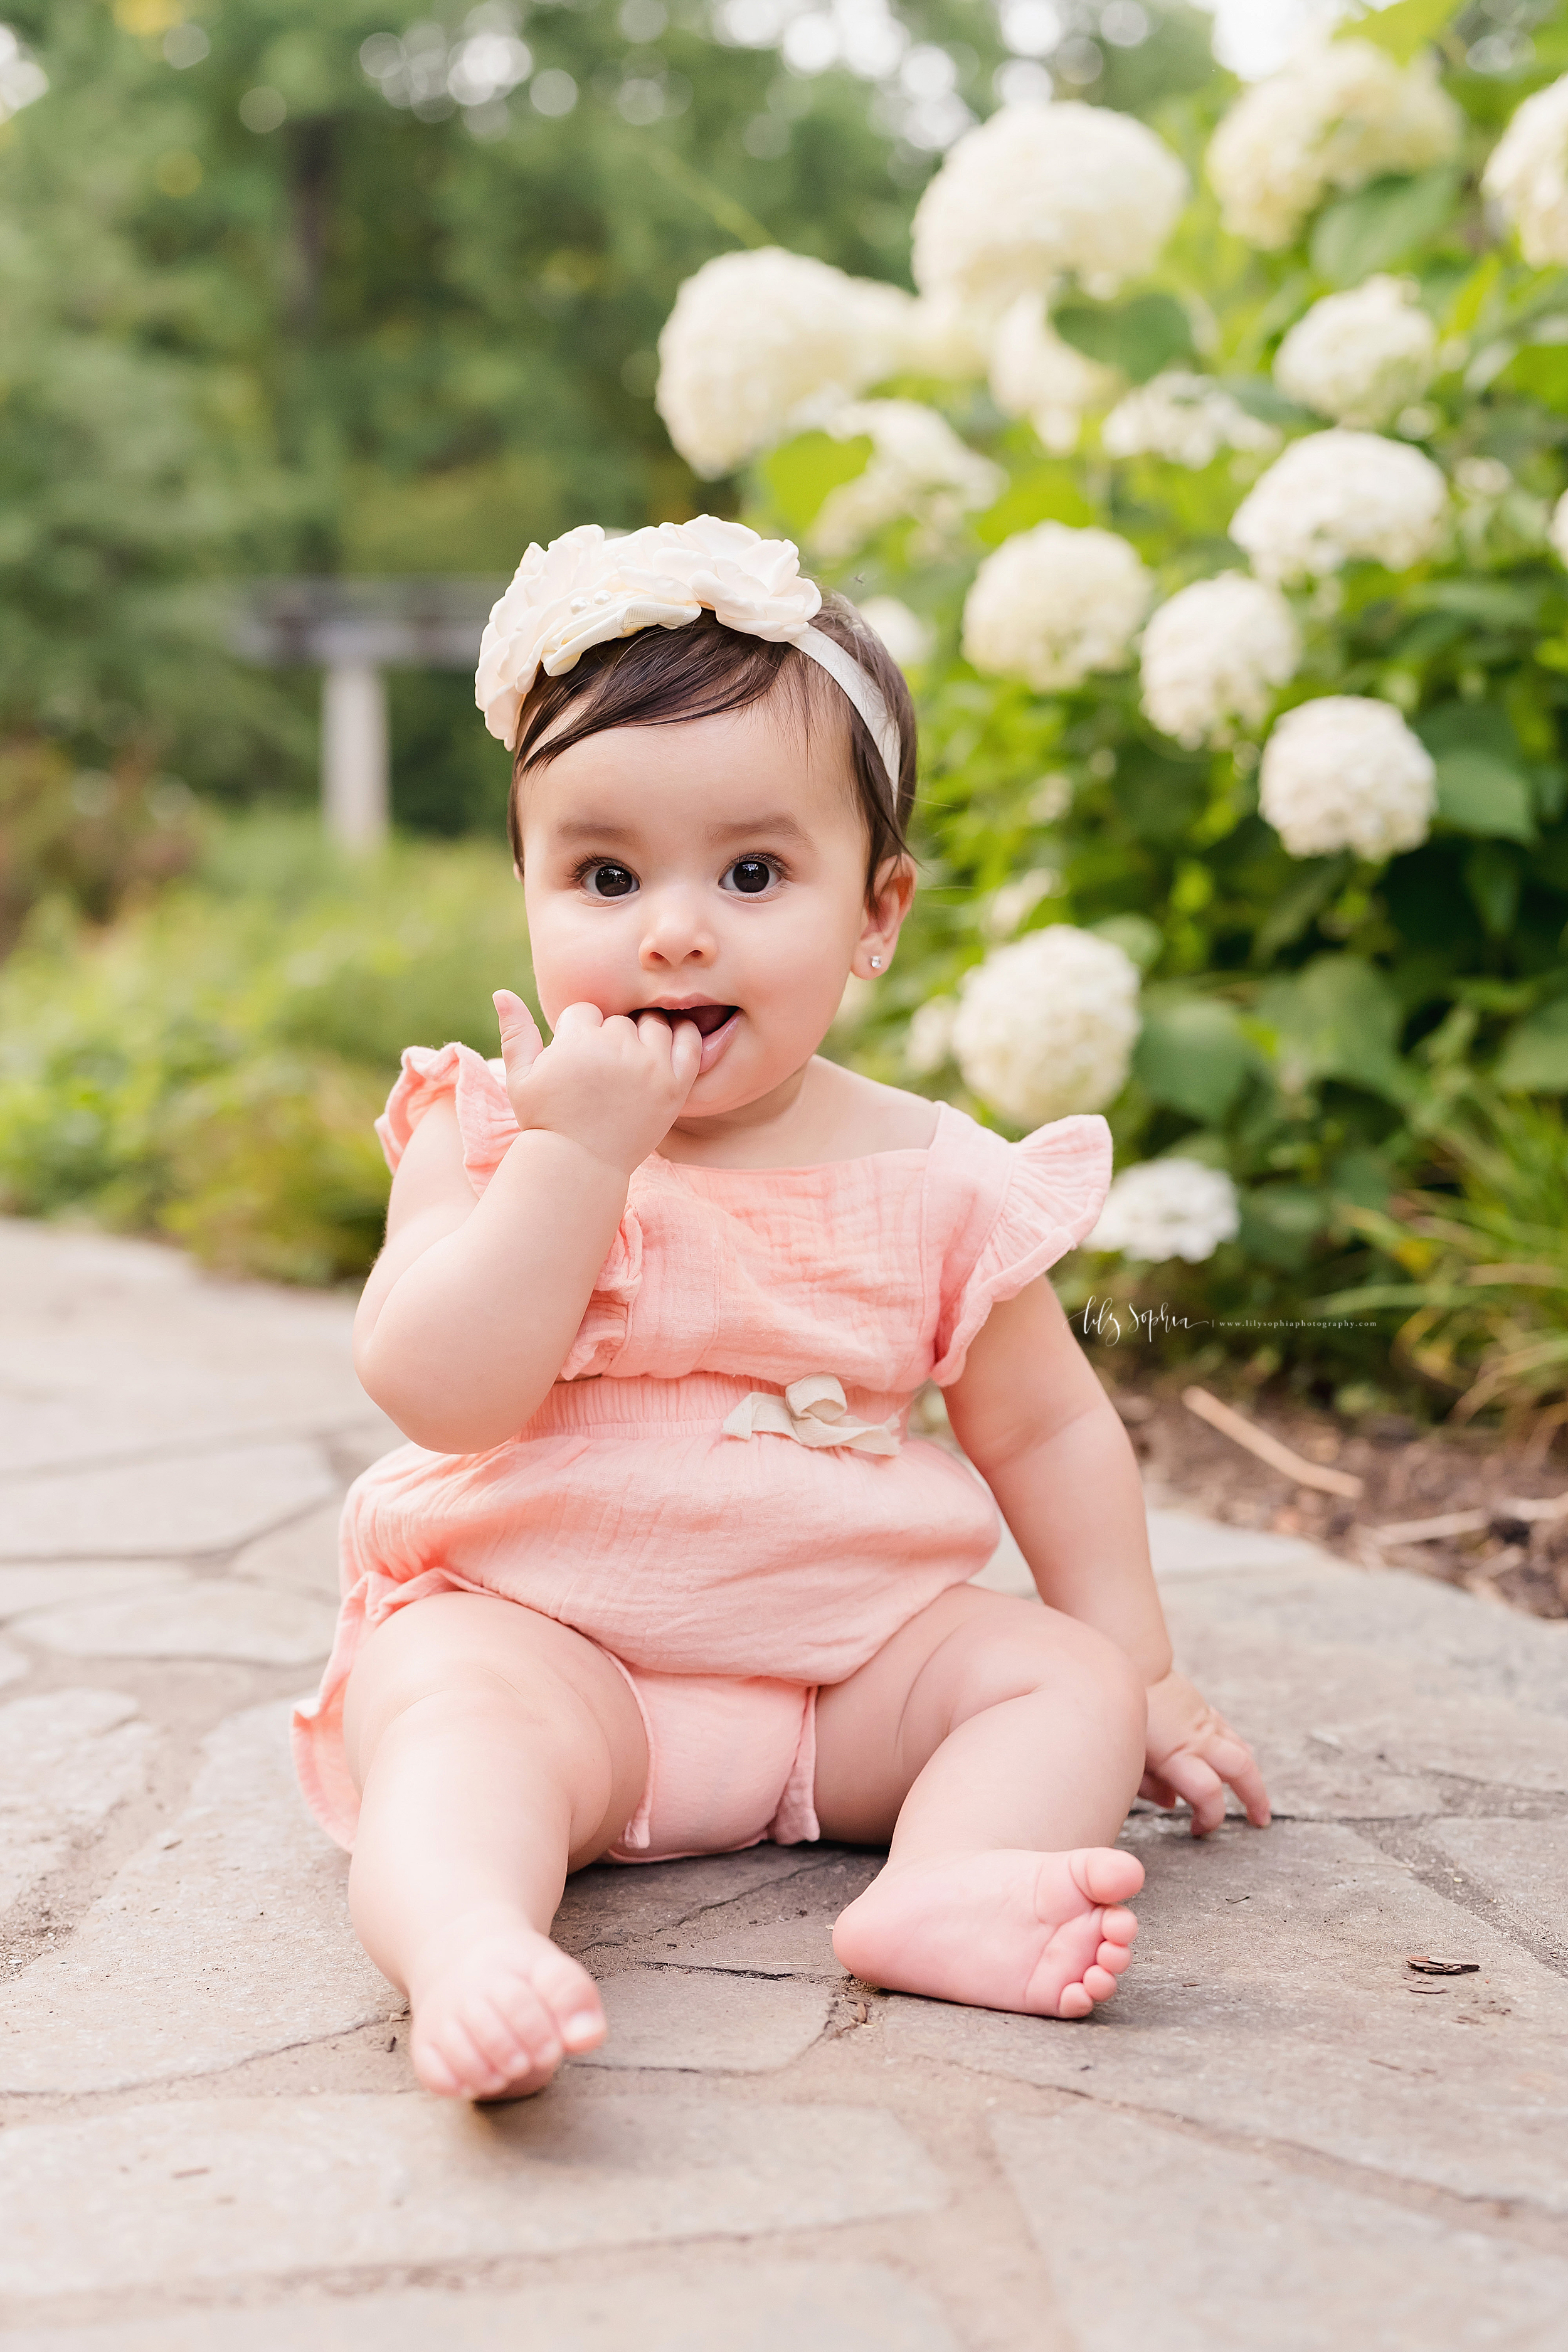 Milestone photo of a baby girl as she sits on a flagstone path and chews on her fingers in an Atlanta garden at sunset.